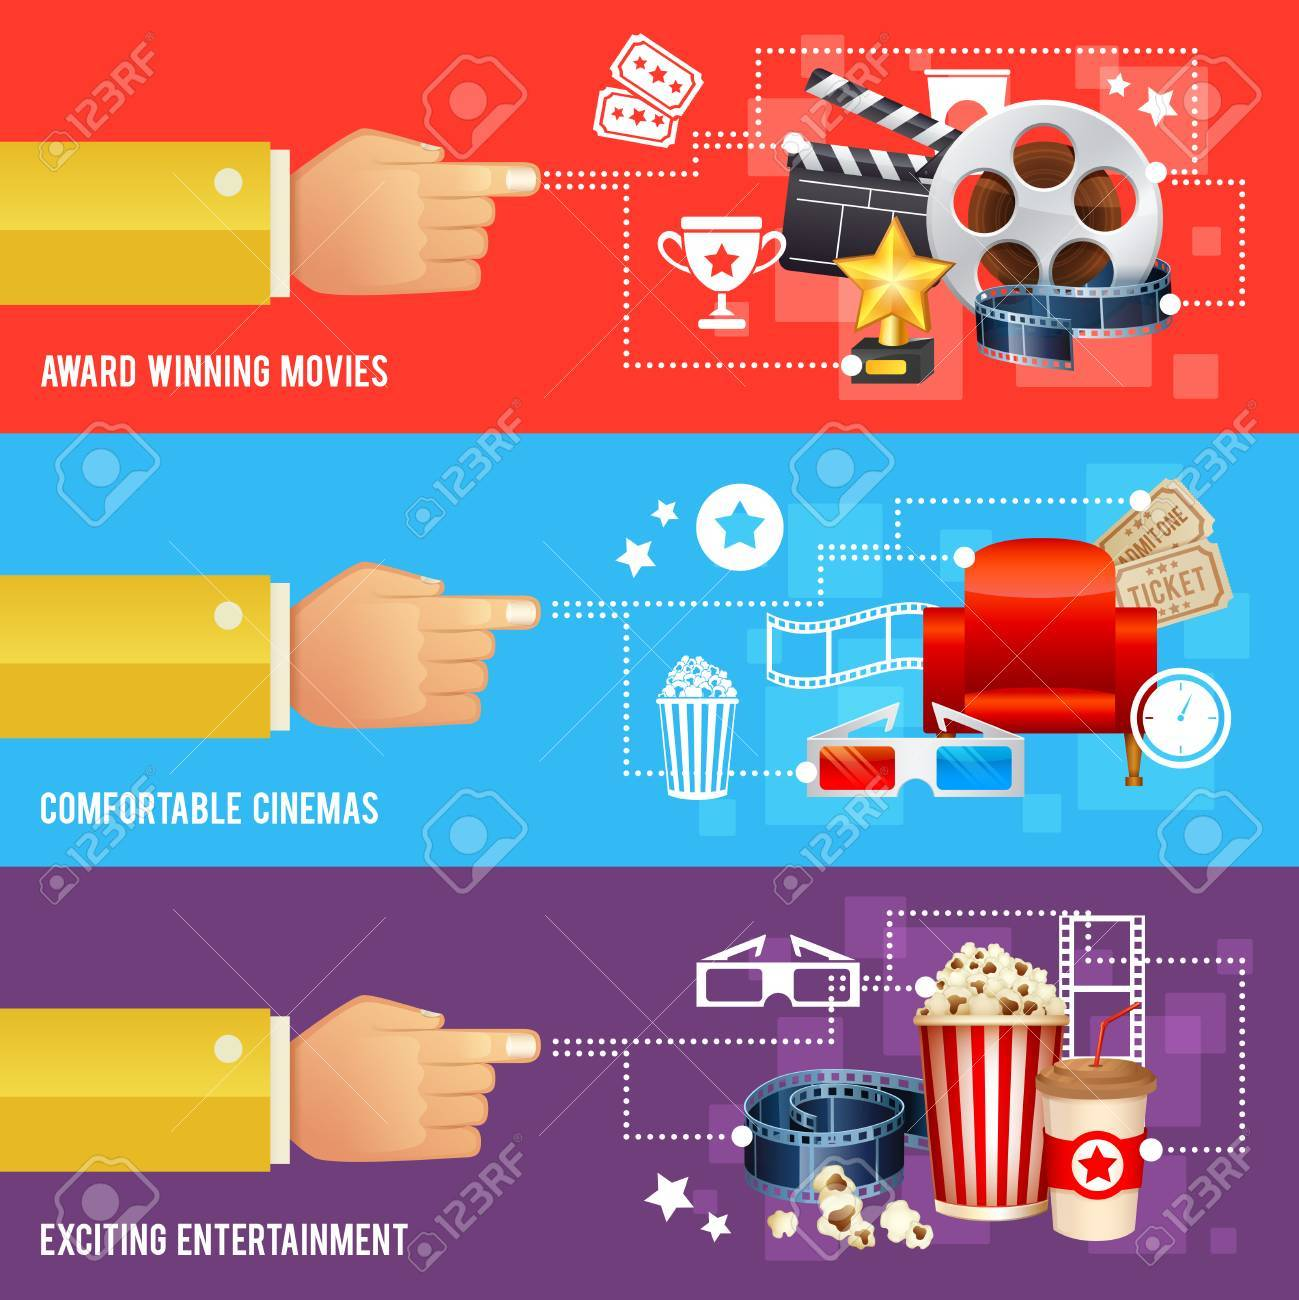 Realistic cinema movie poster template with film reel, clapper, popcorn, 3D glasses, conceptbanners - 42779261